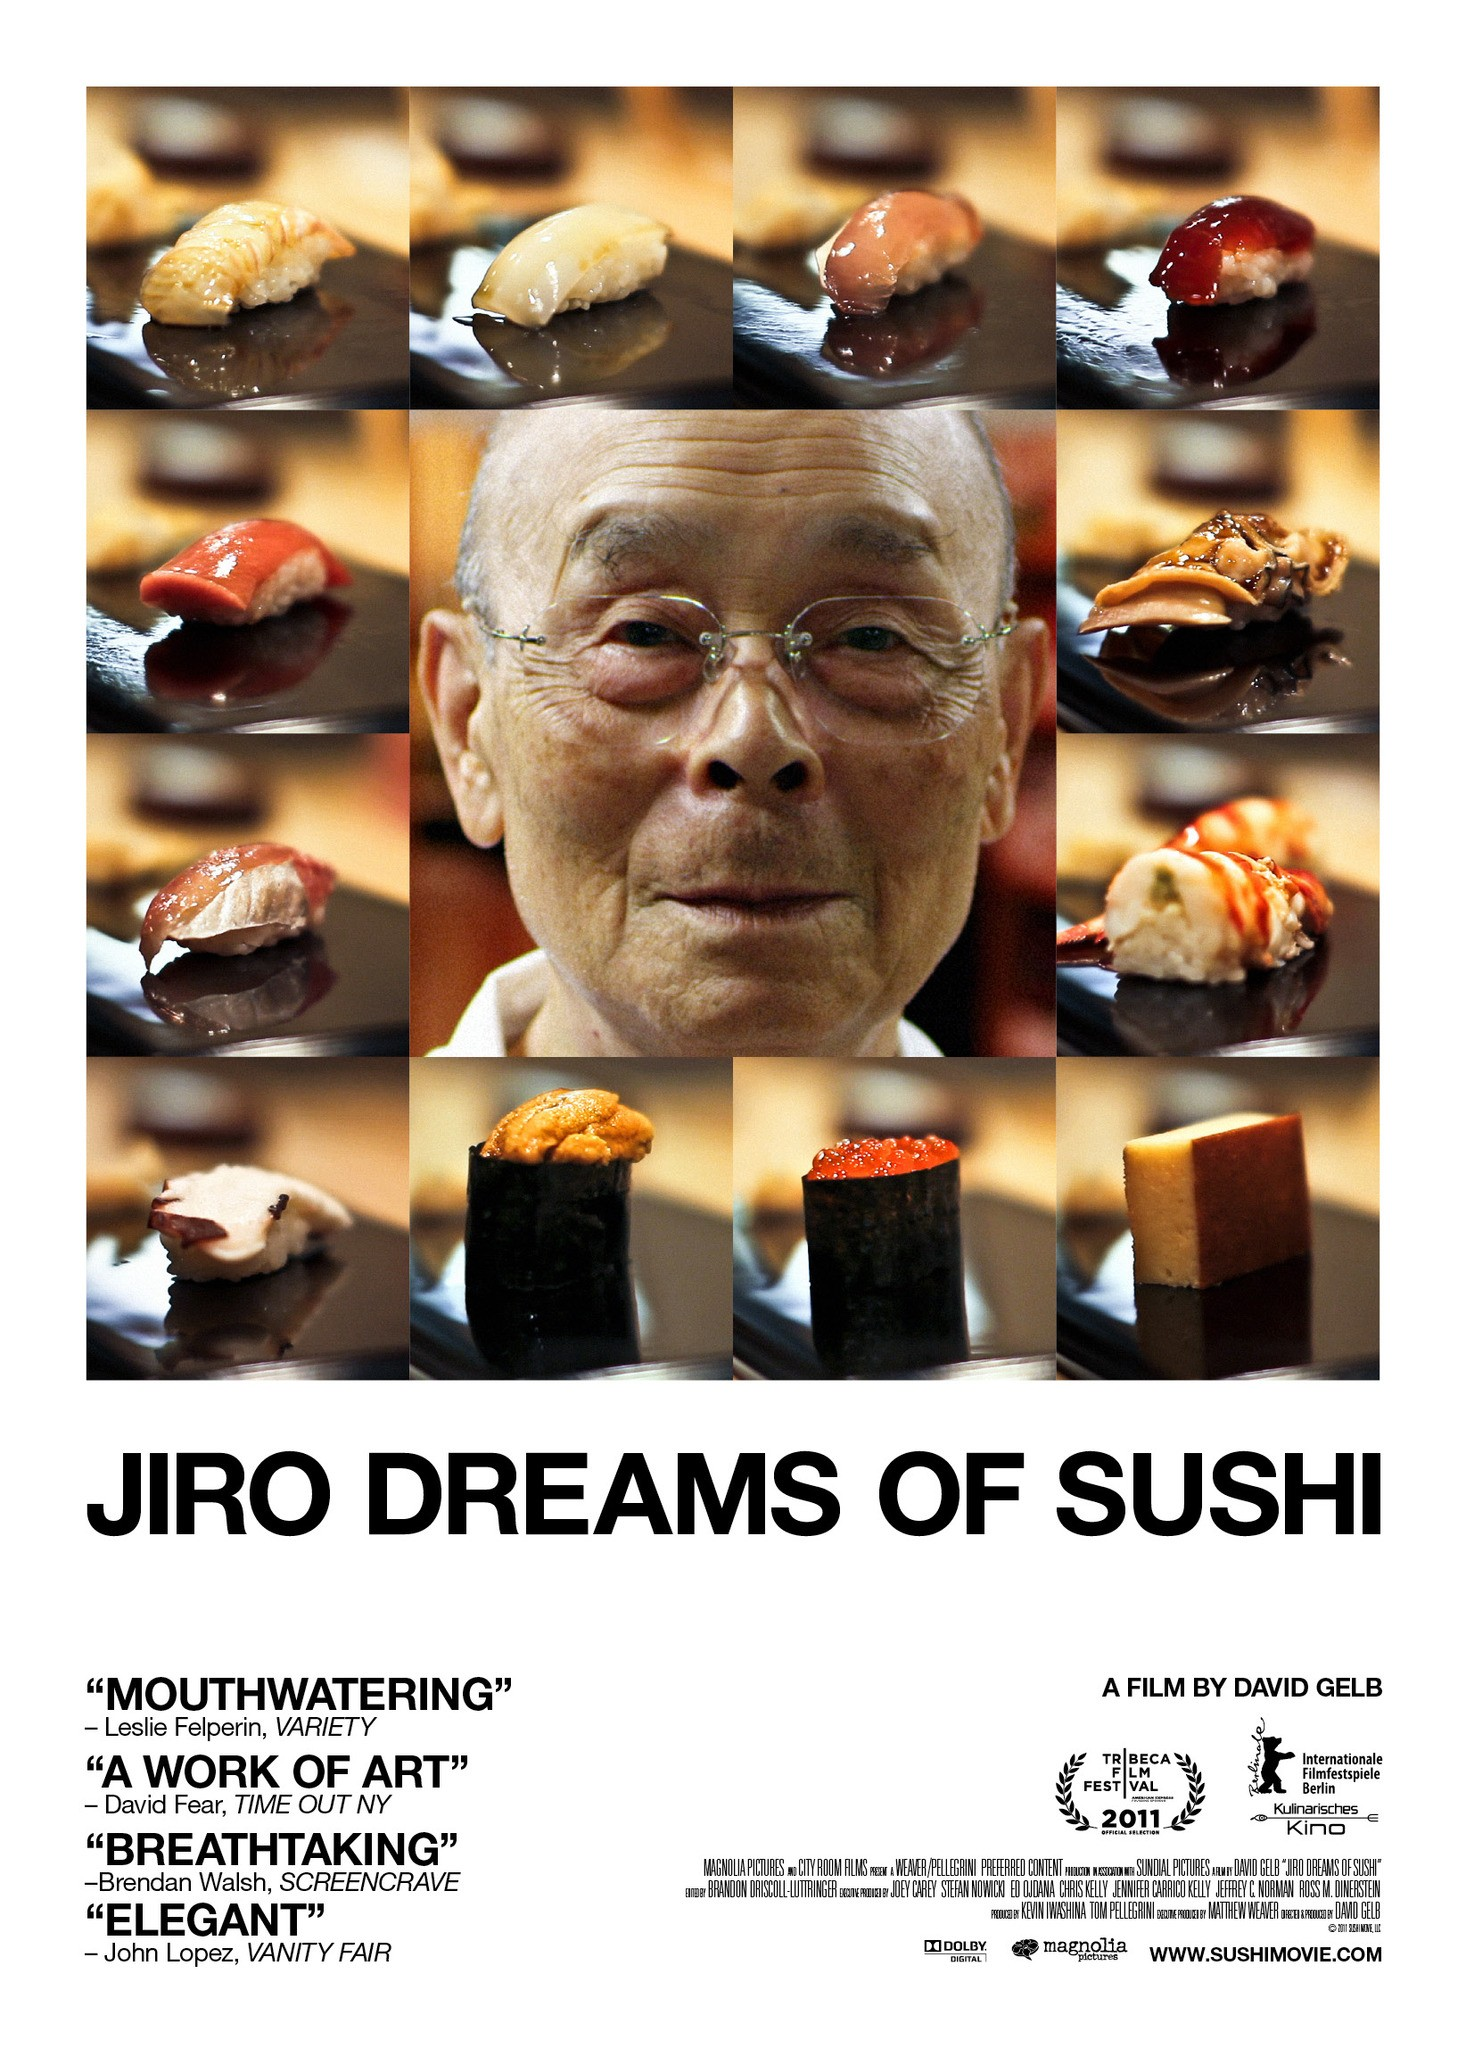 Mega Sized Movie Poster Image for Jiro Dreams of Sushi